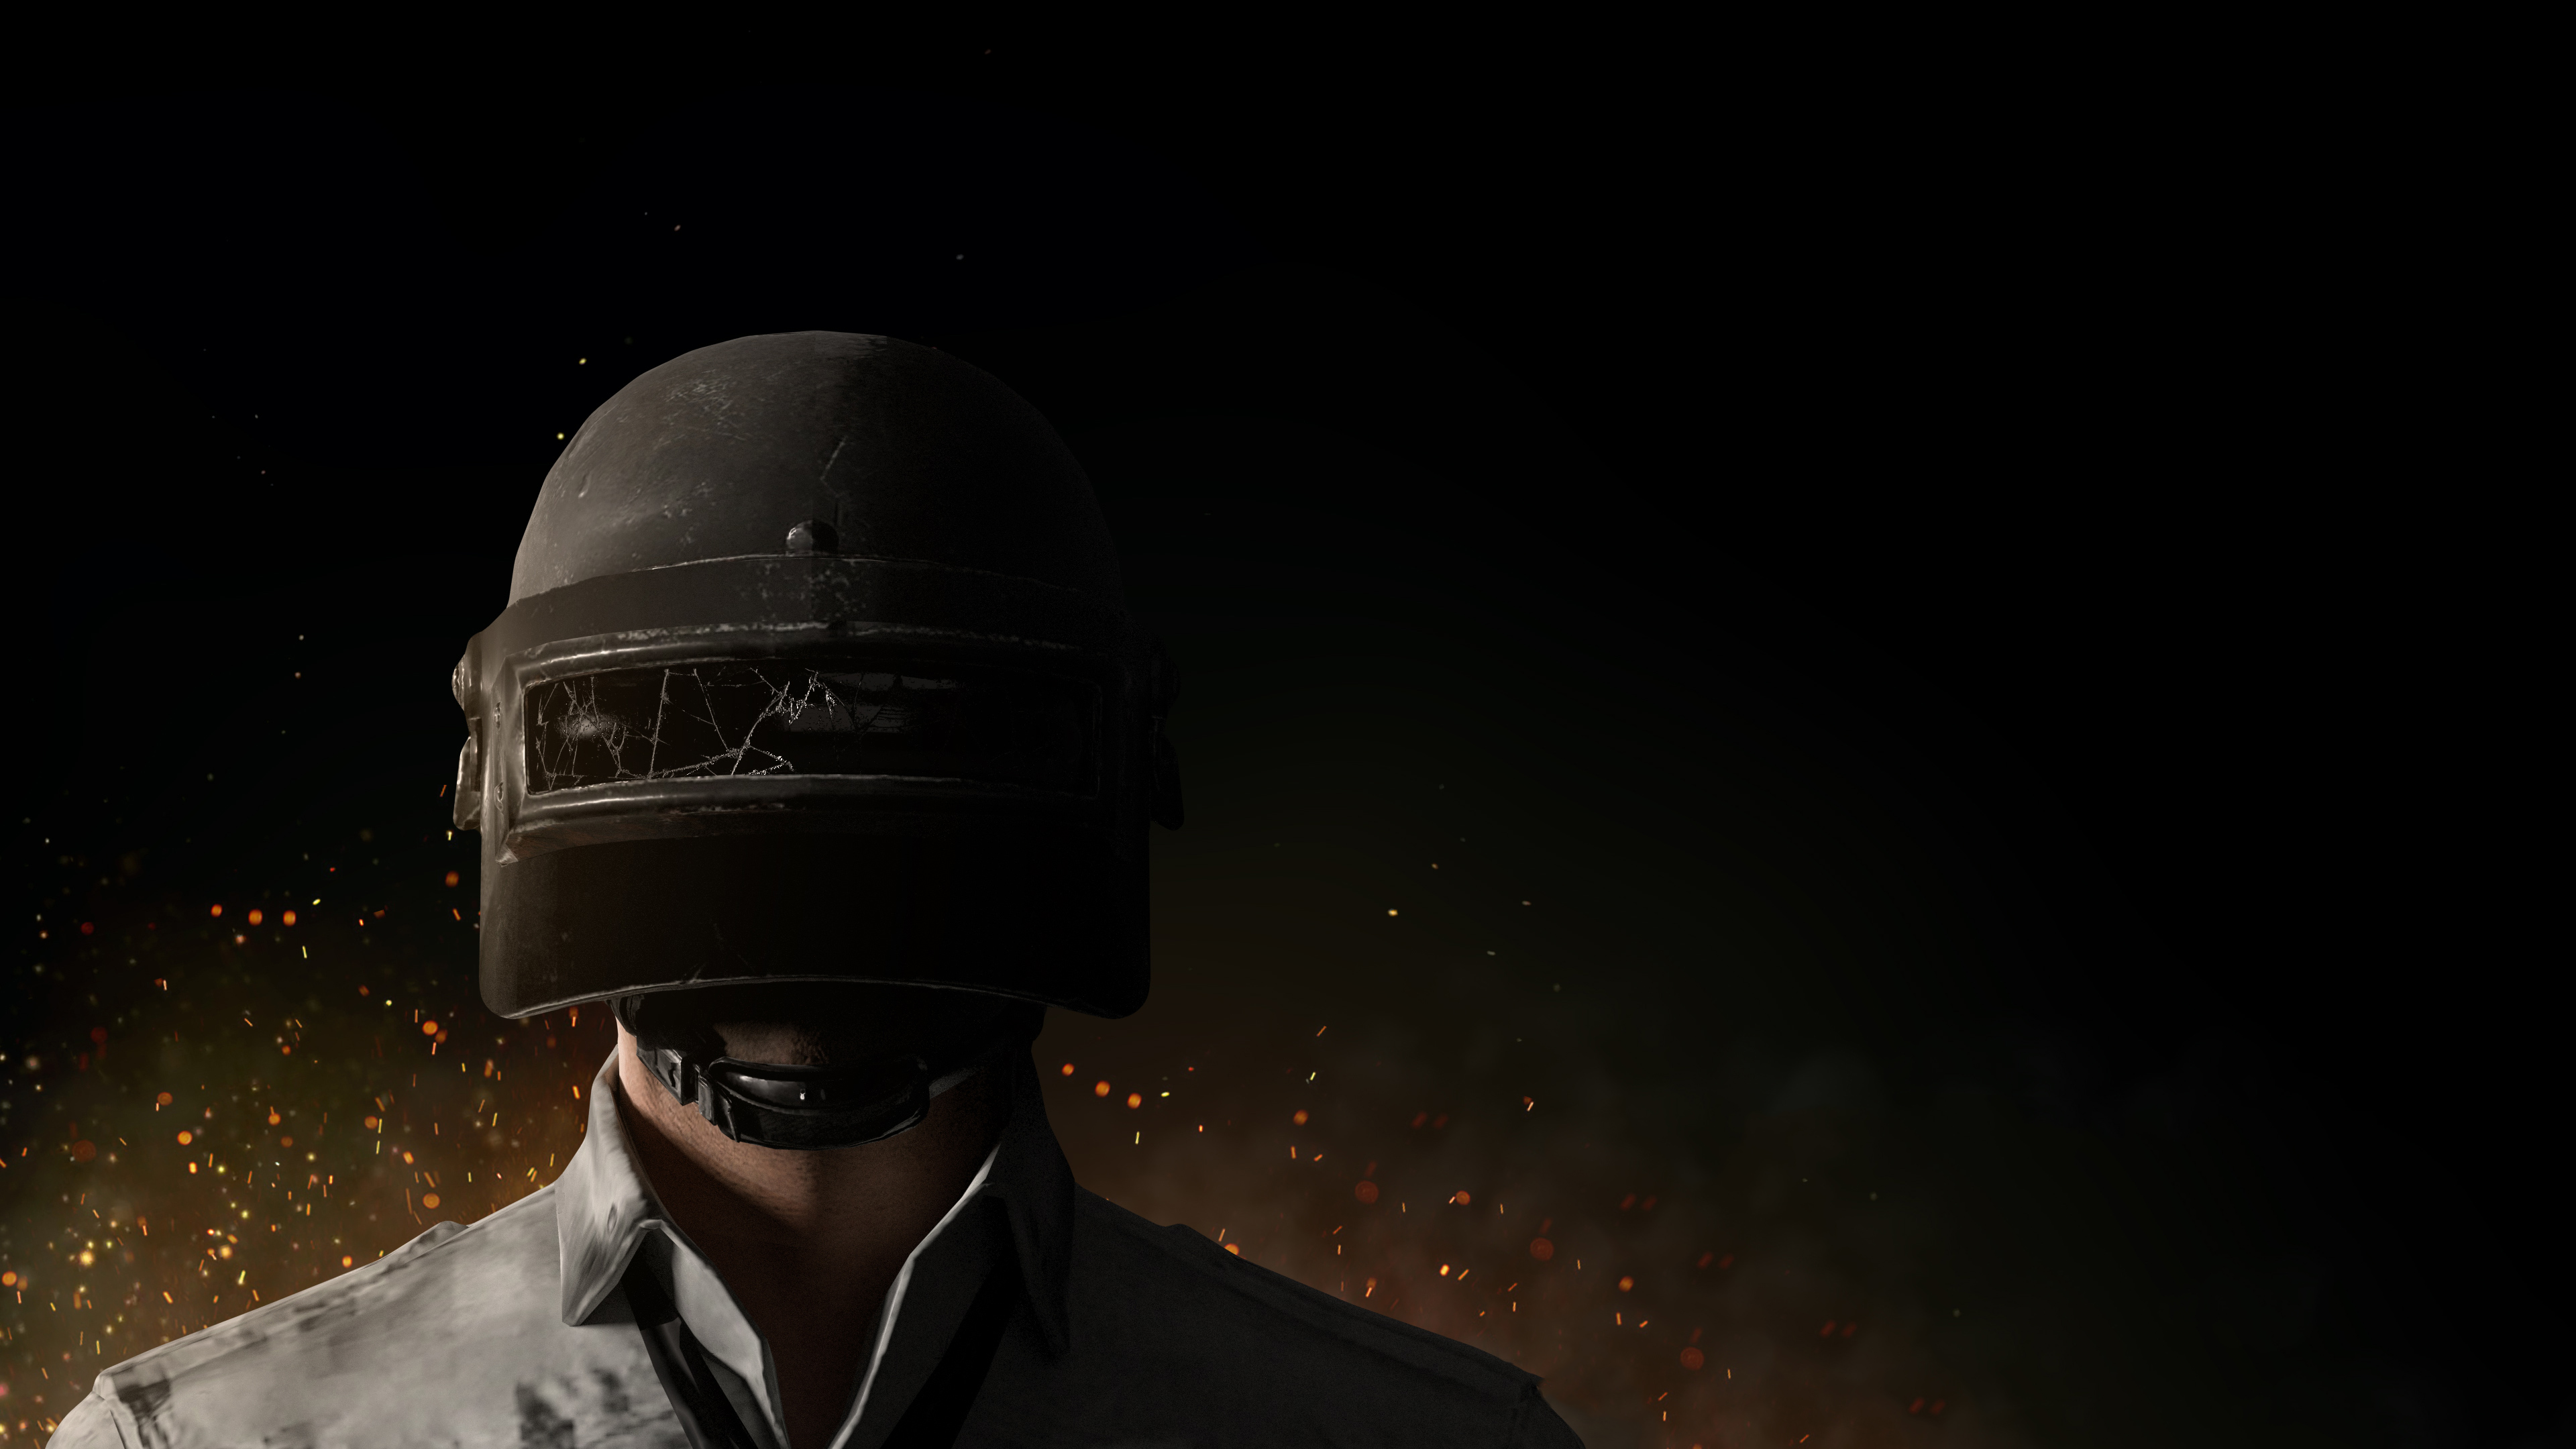 Pubg Wallpaper 1920x1080: PUBG Helmet Guy 4k, HD Games, 4k Wallpapers, Images